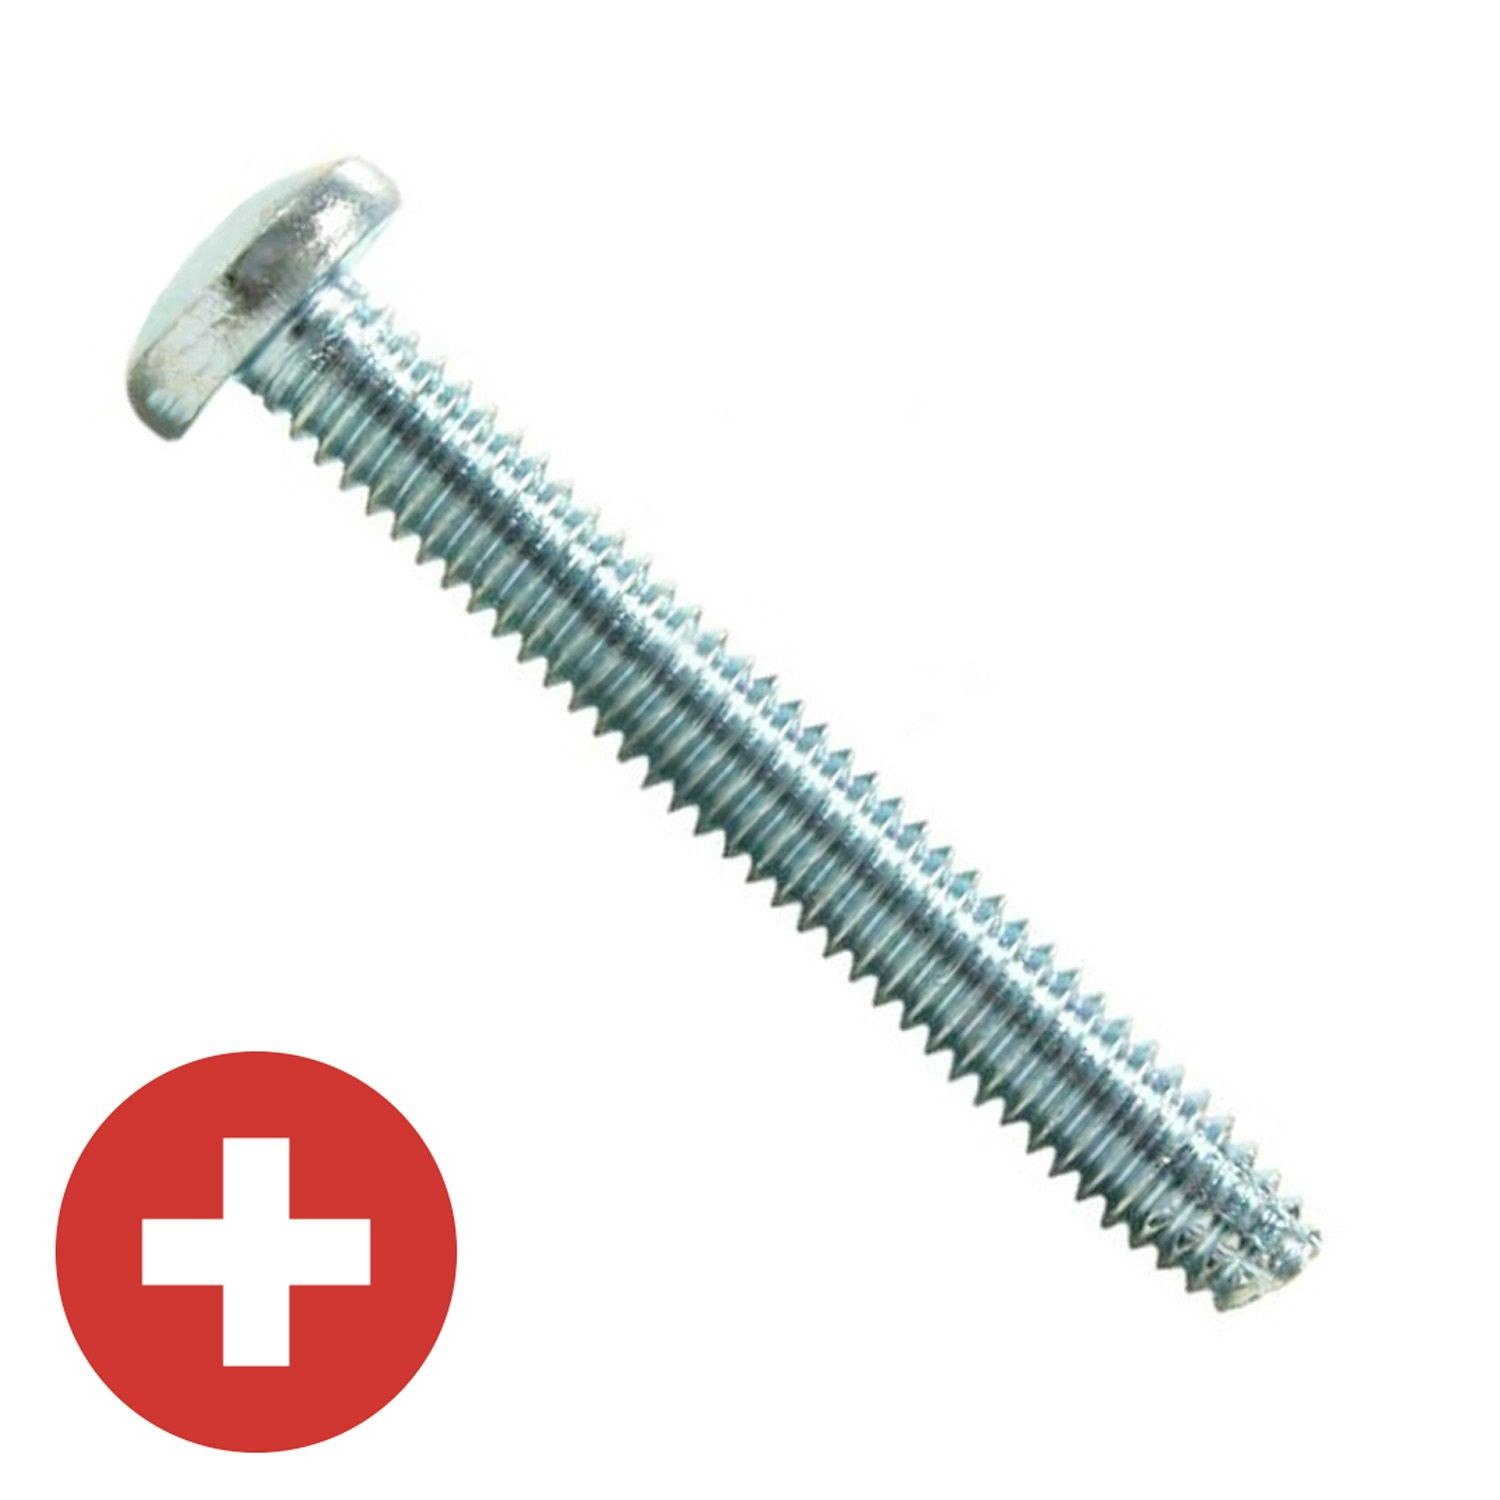 "#10-32 x 3/8"" Zinc Plated Phillips Pan Head Thread Cutting Screw Type F"